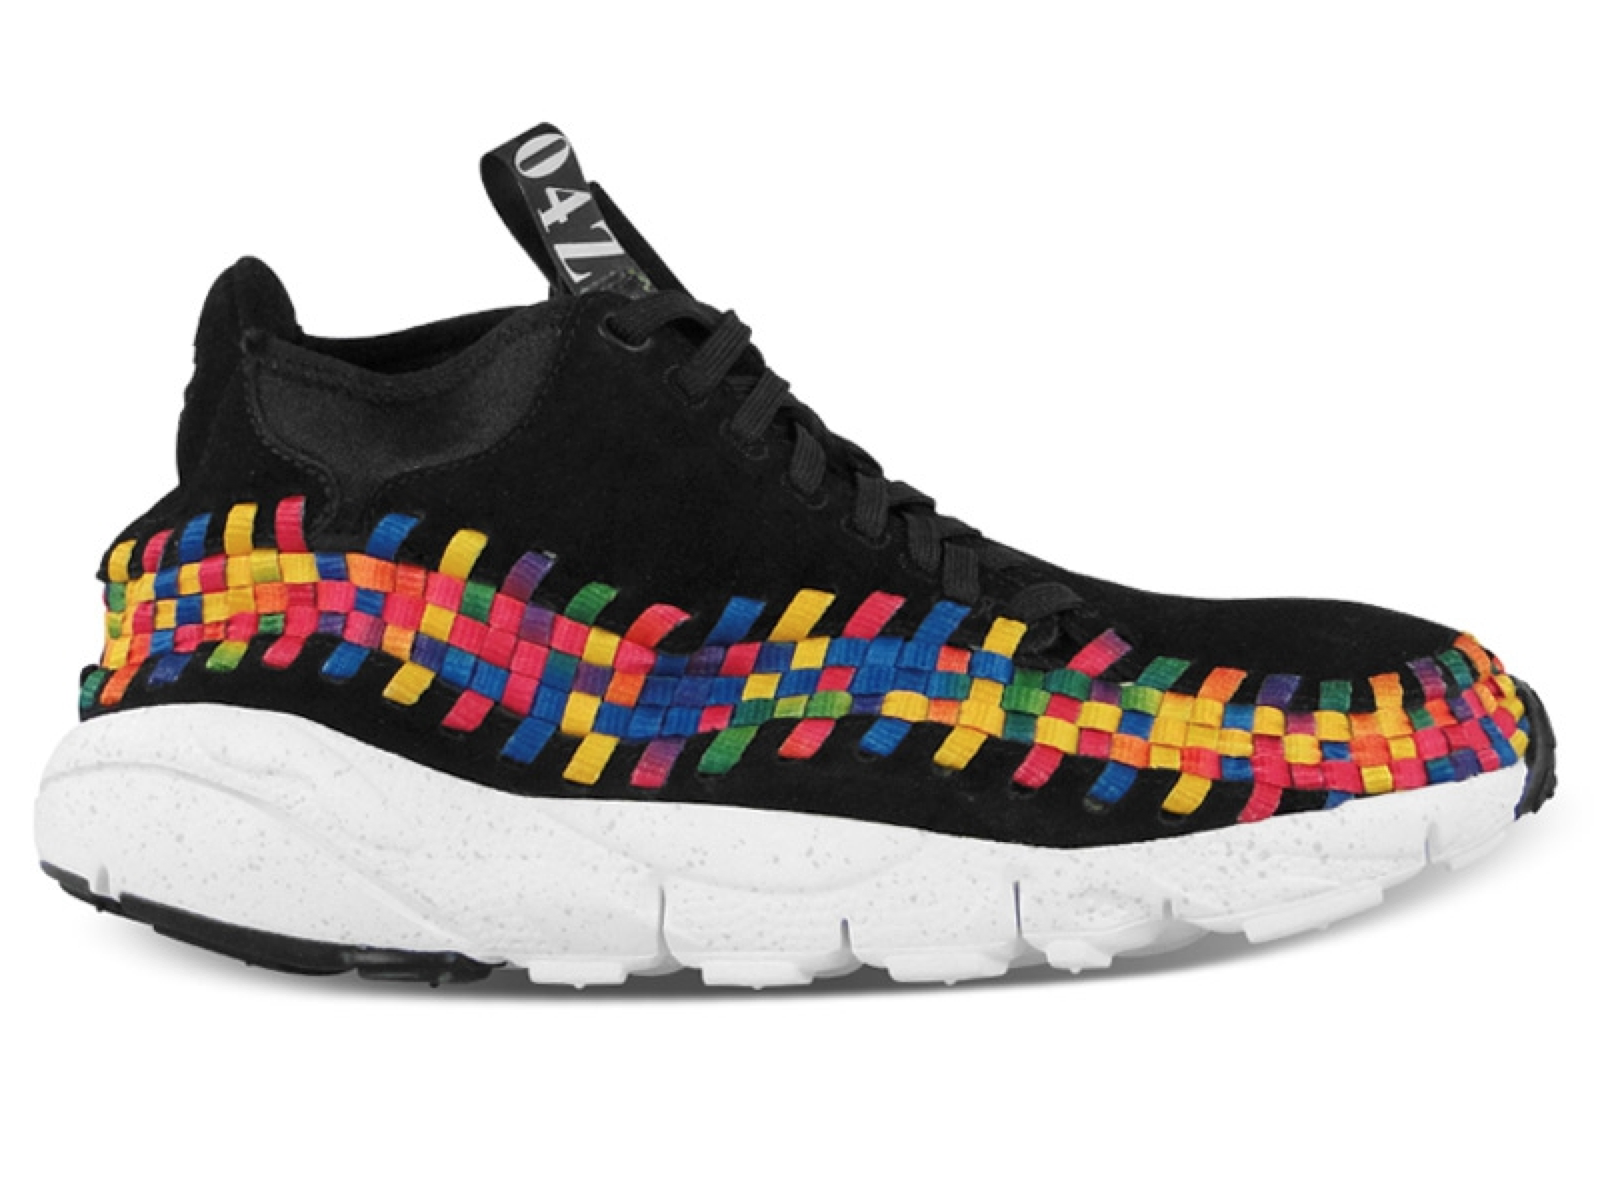 newest 44cfc 4f9c2 Nike Air Footscape Woven Chukka Premium QS Rainbow  Black Black-White  at